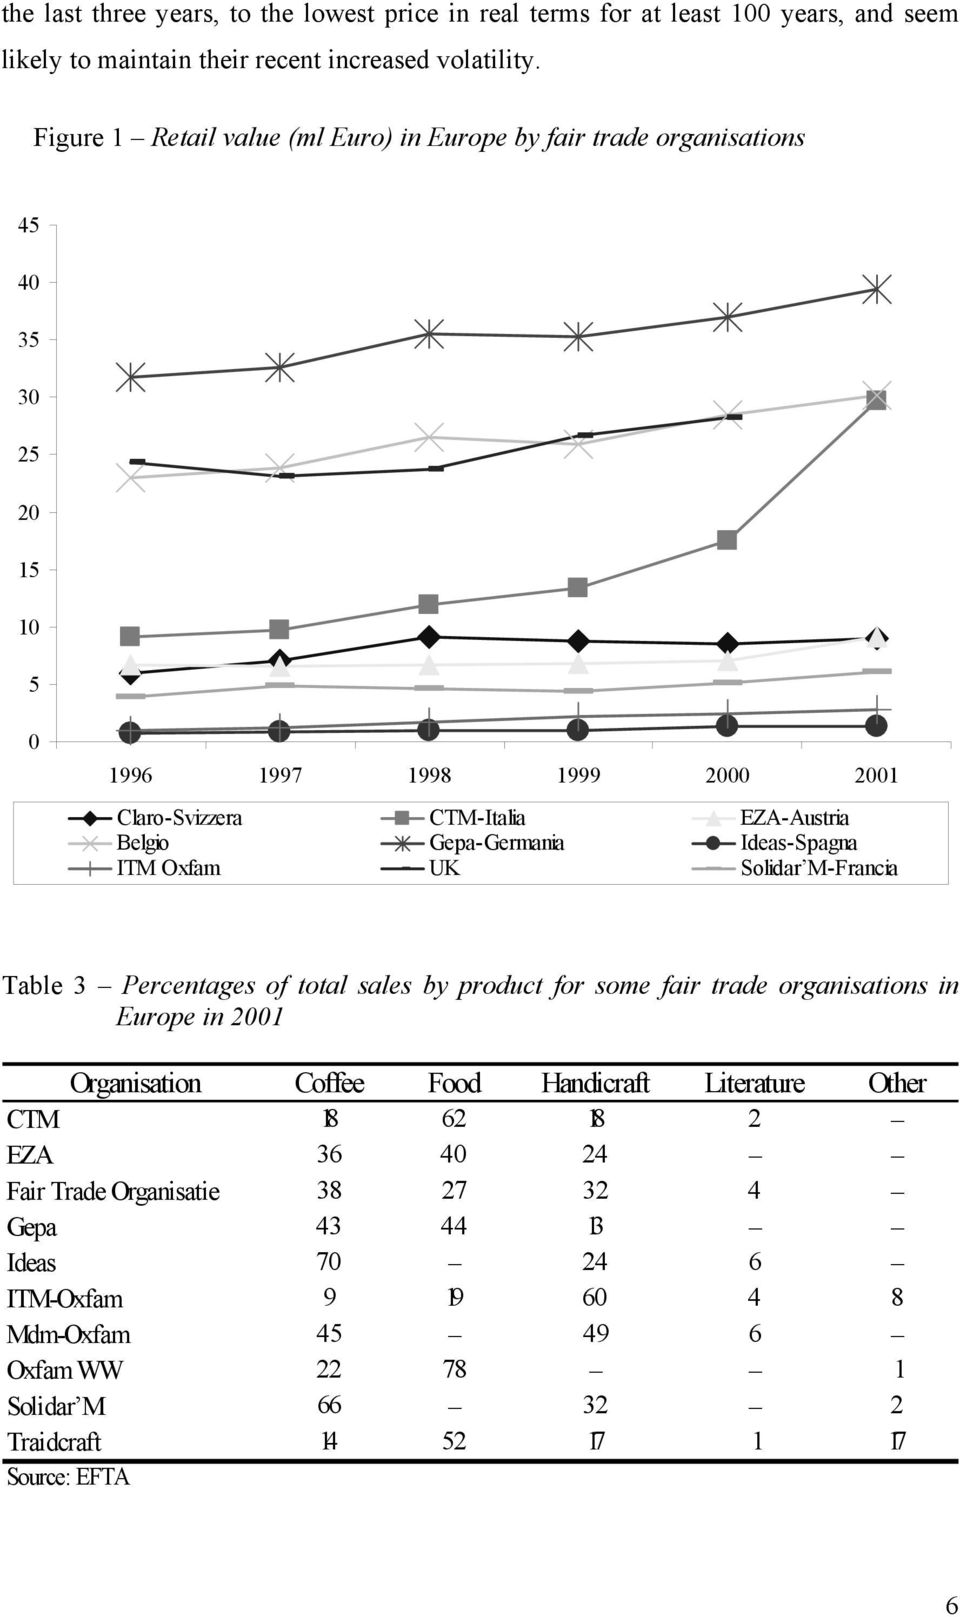 Gepa-Germania Ideas-Spagna ITM Oxfam UK Solidar M-Francia Table 3 Percentages of total sales by product for some fair trade organisations in Europe in 2001 Organisation Coffee Food